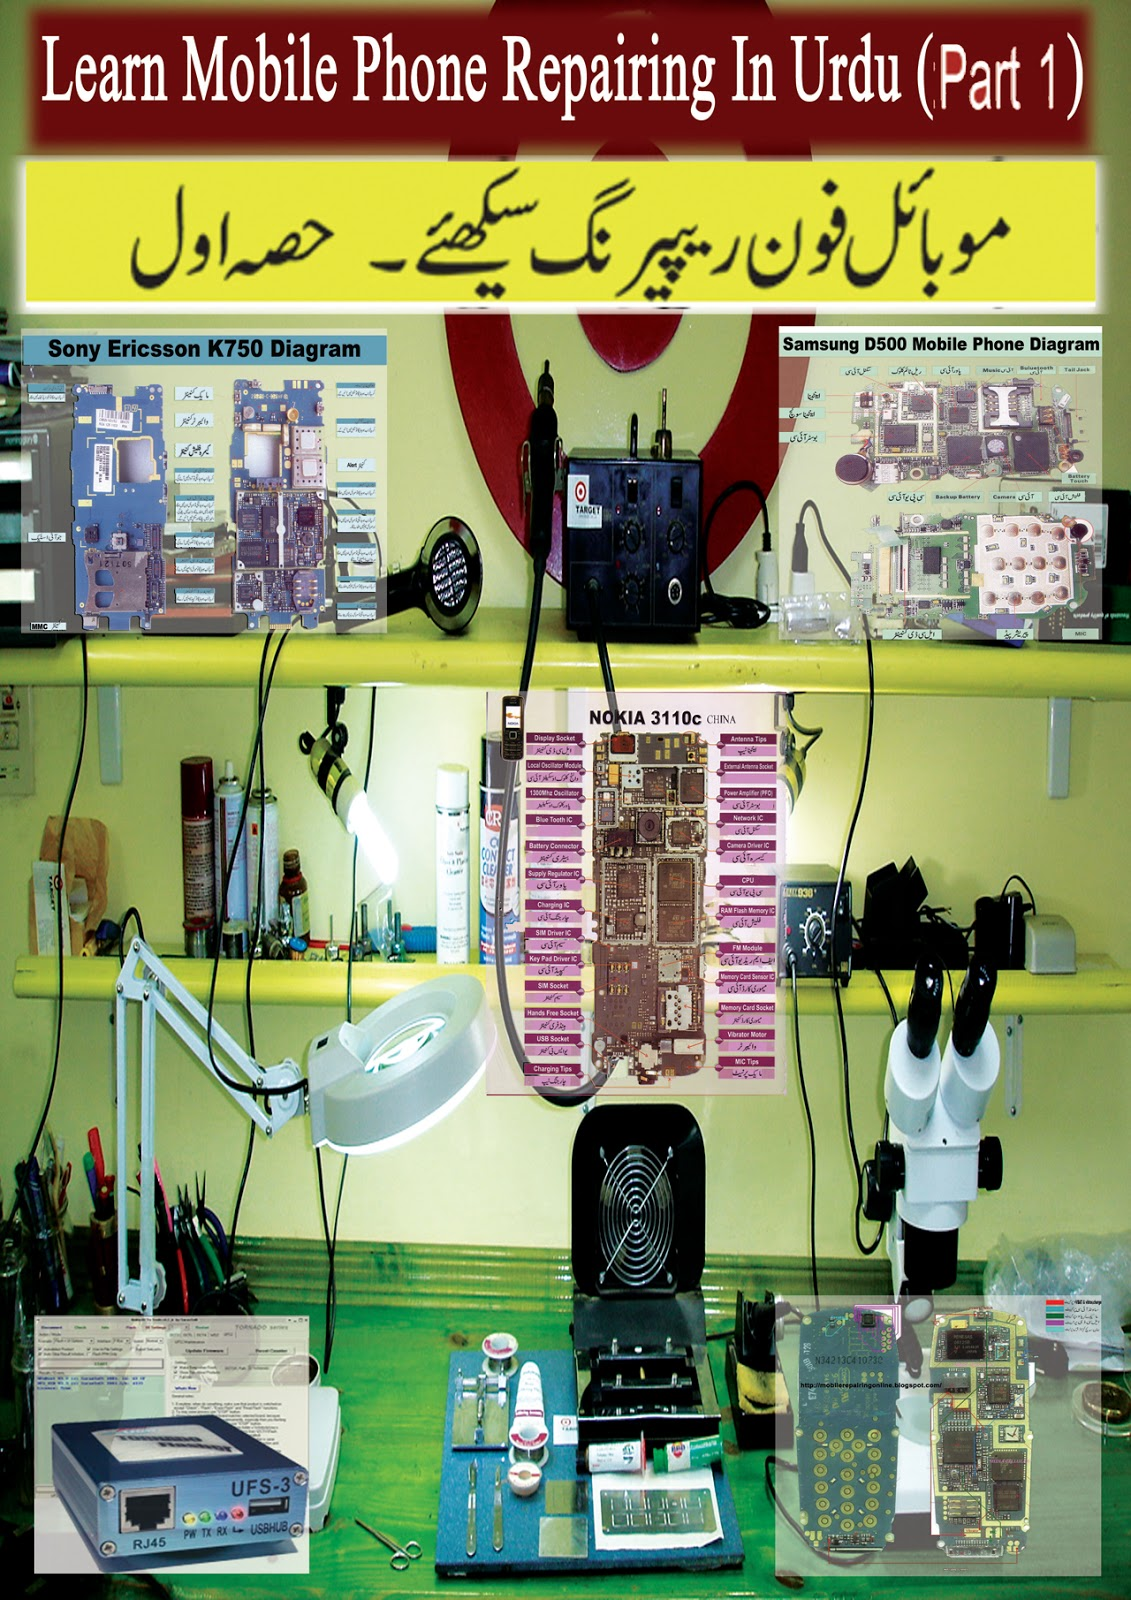 Mobile Repairing Diagram In Urdu